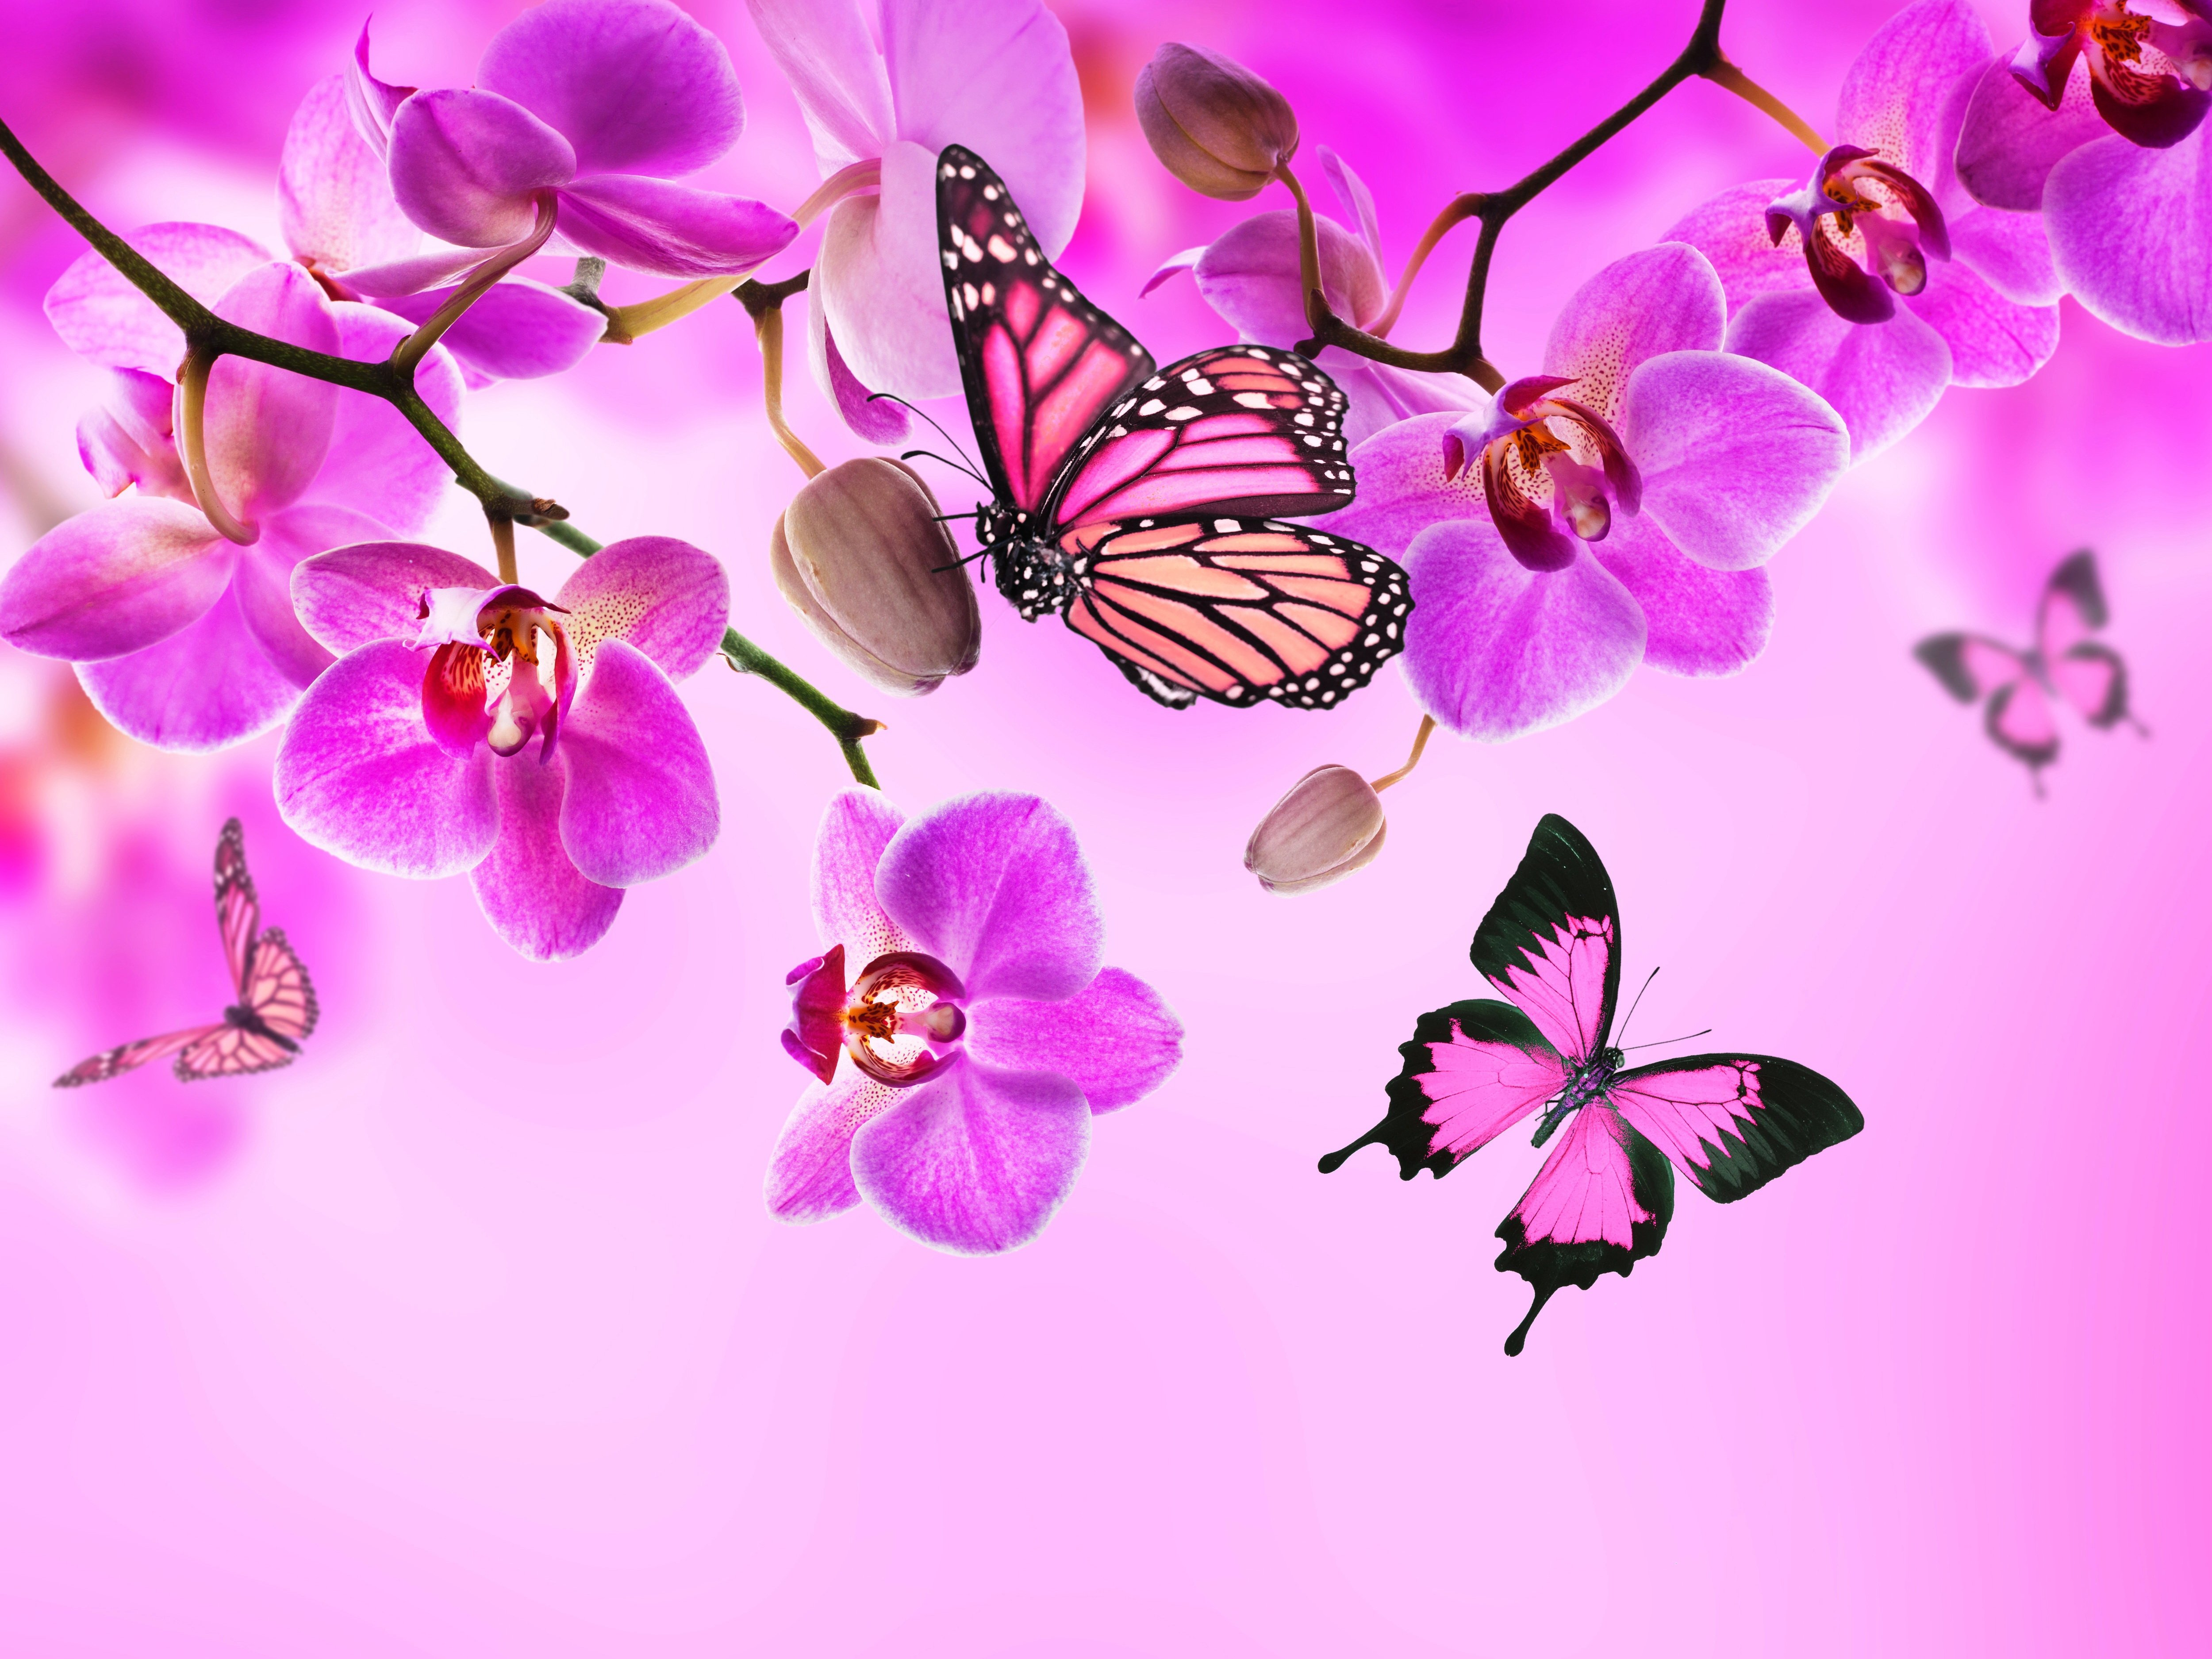 Orchid Butterflies Pink Color Flowers Wallpaper 5000x3750 336299